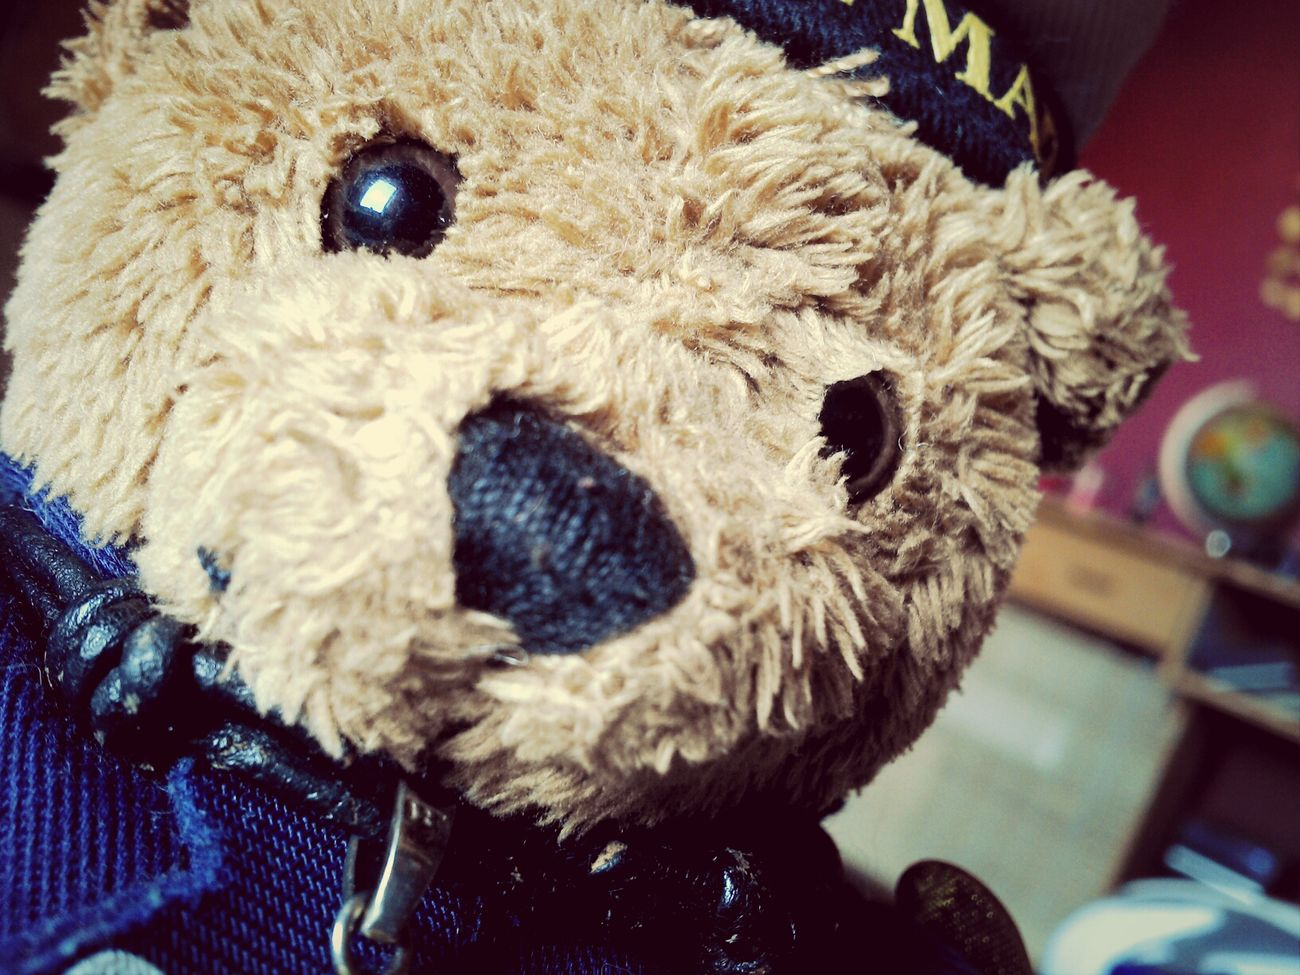 Special Nelson Selfie for the Malephotographerofthemonth contest @tillytallulah NelsonsAdventures Teddy